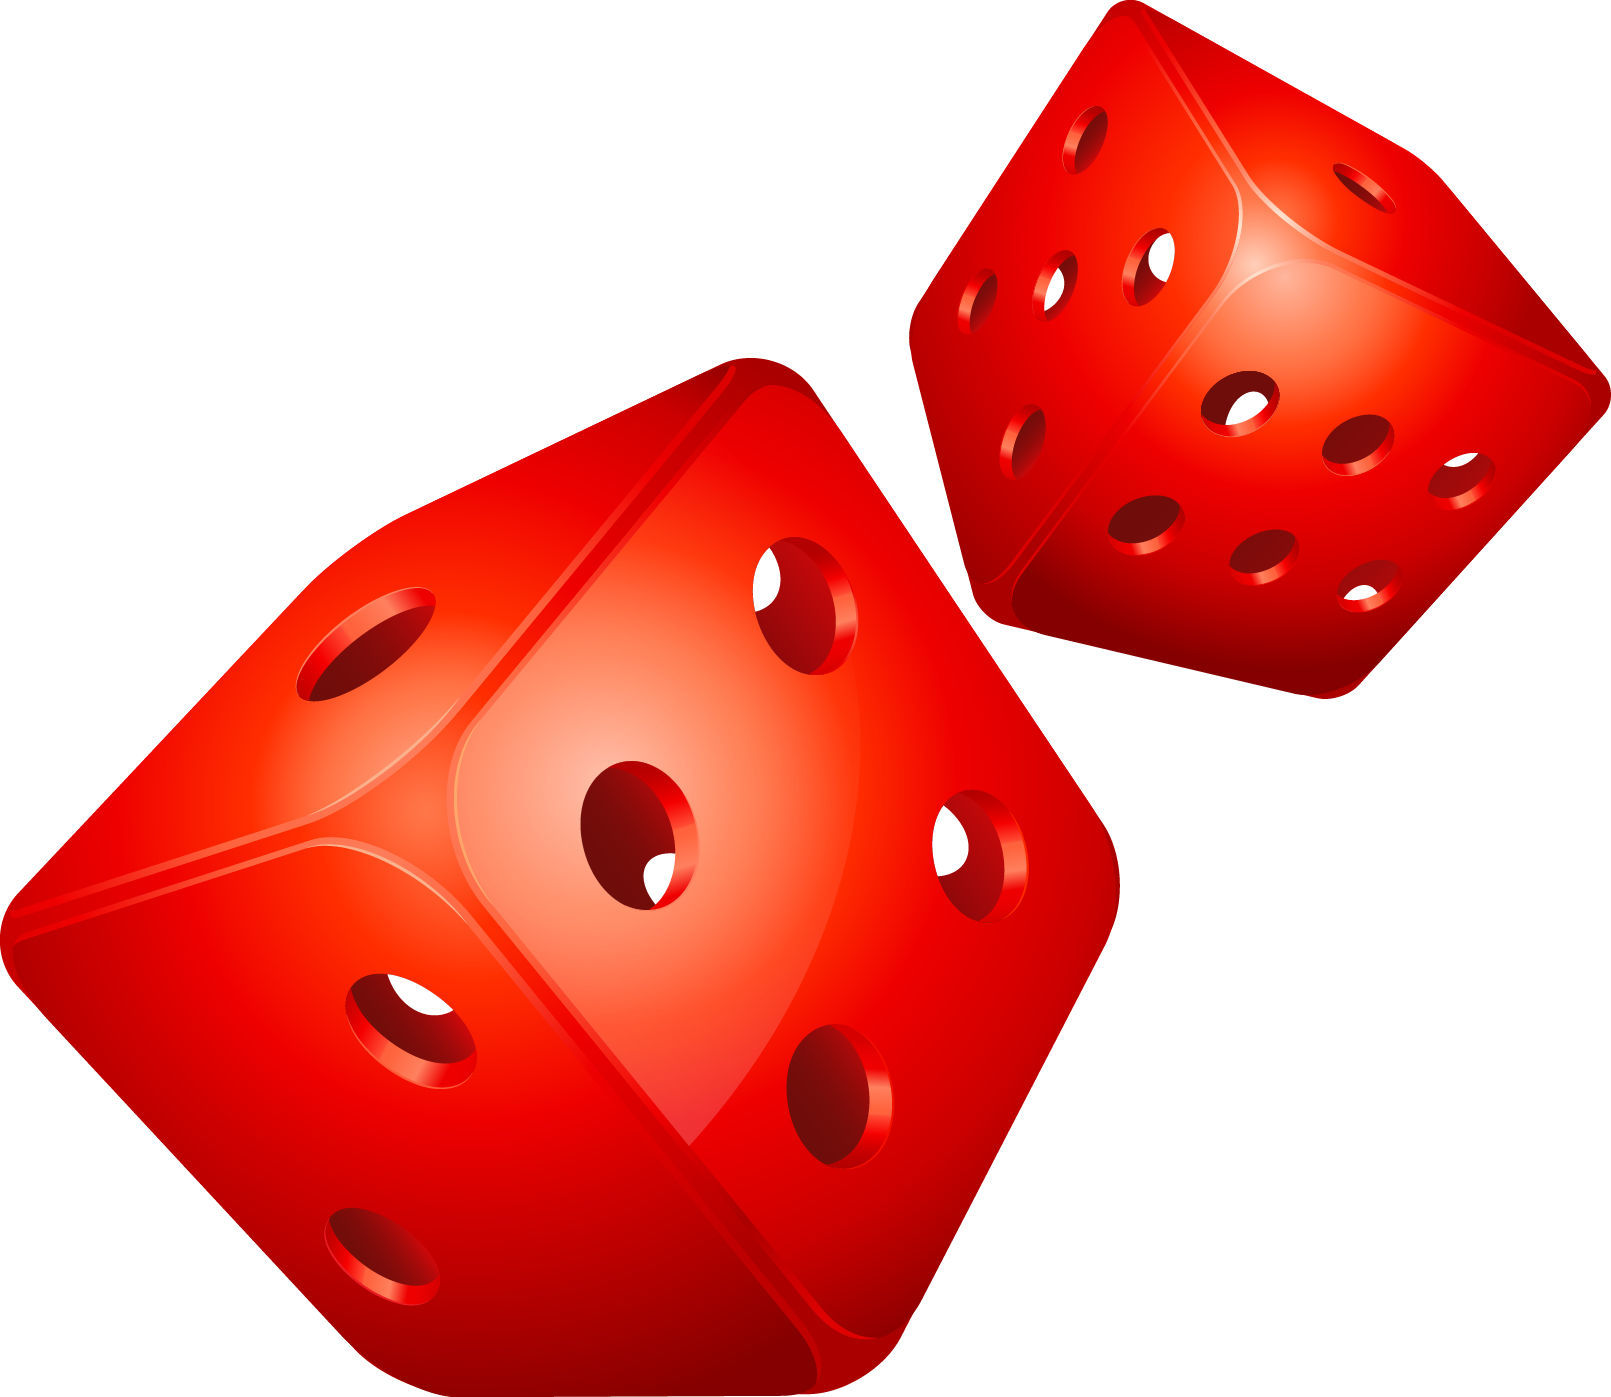 Dice clipart colored dice. Public domain free on